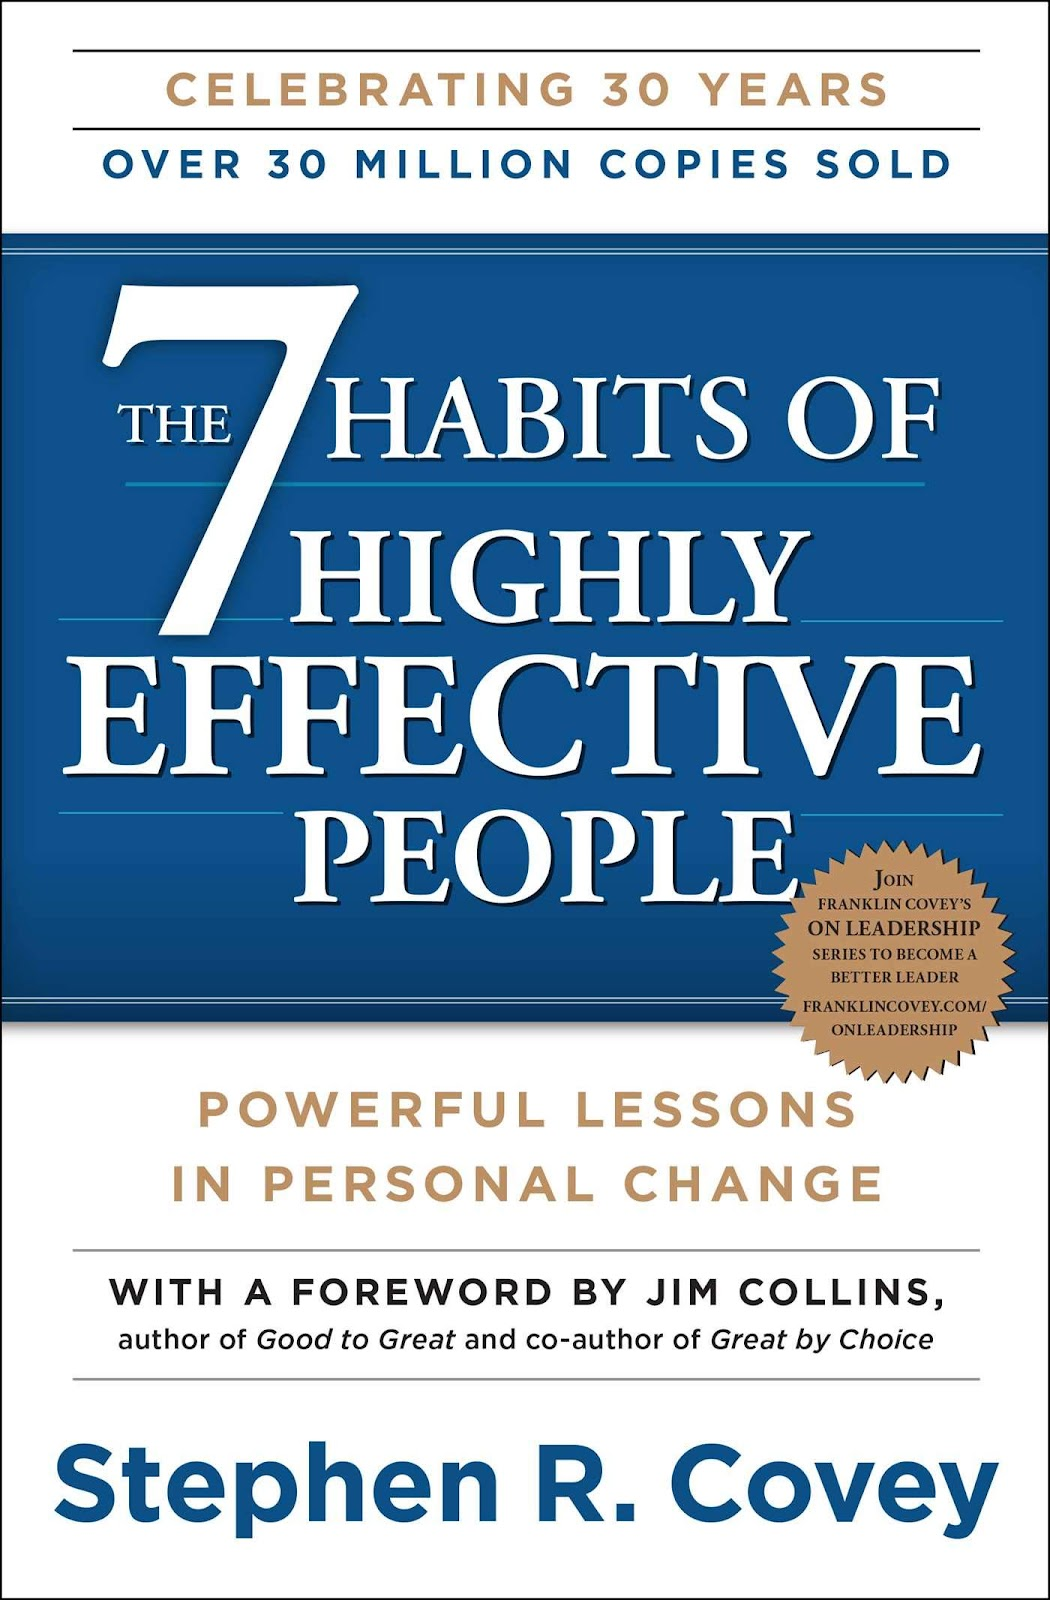 7 Habits of Highly Effective People is a Great Book for Marketers